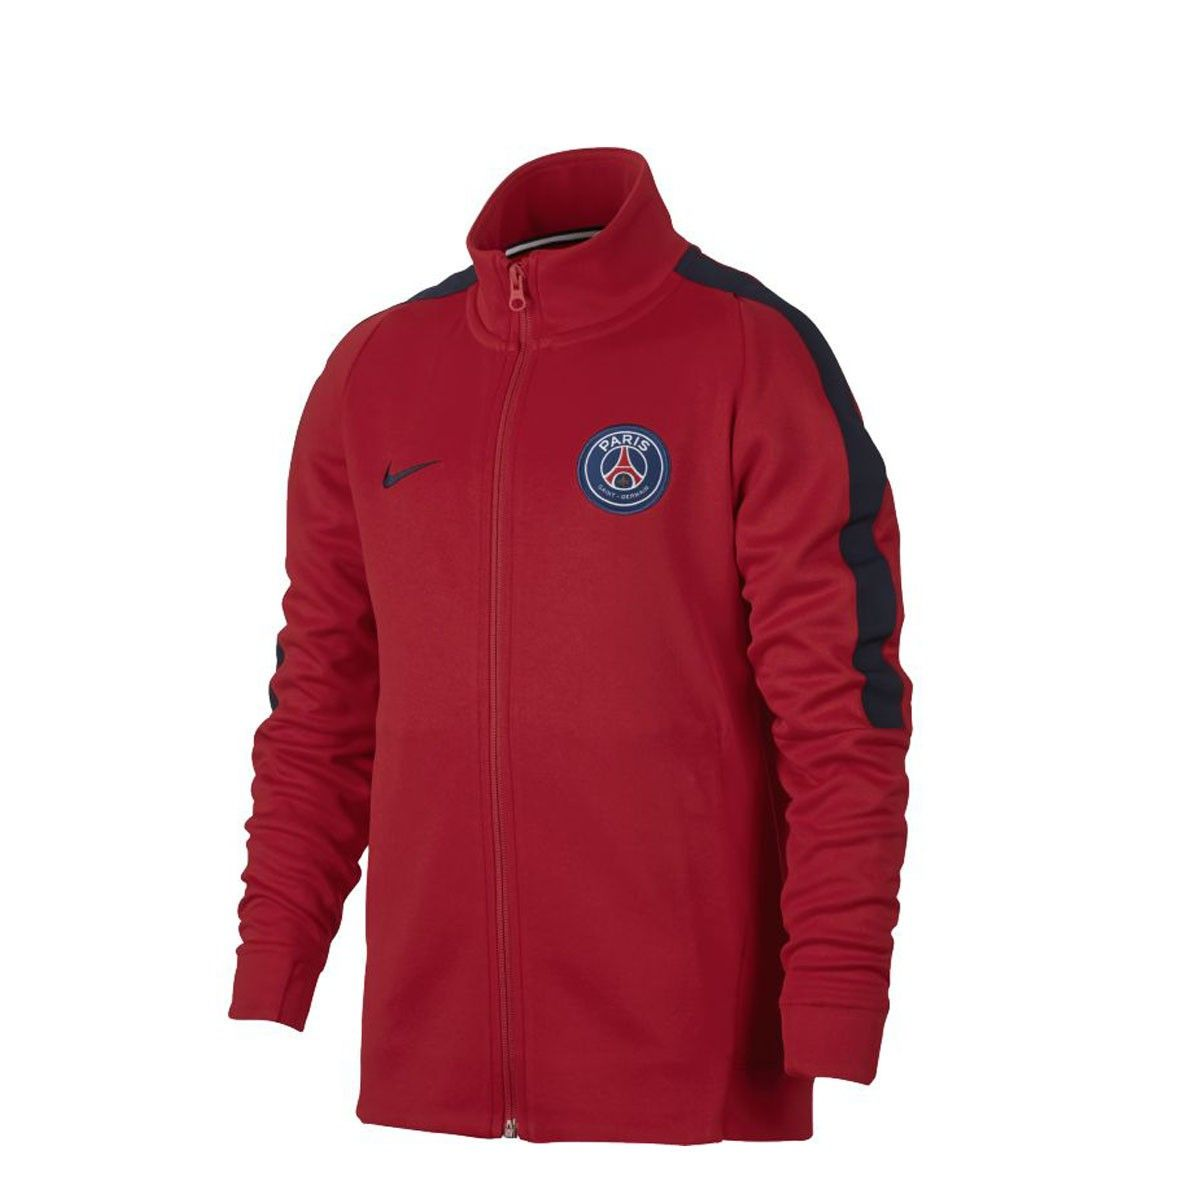 3a25bbe0624c Nike Veste de survêtement Nike Paris Saint-Germain Authentic Franchise  2017 18 Junior -. Loading zoom